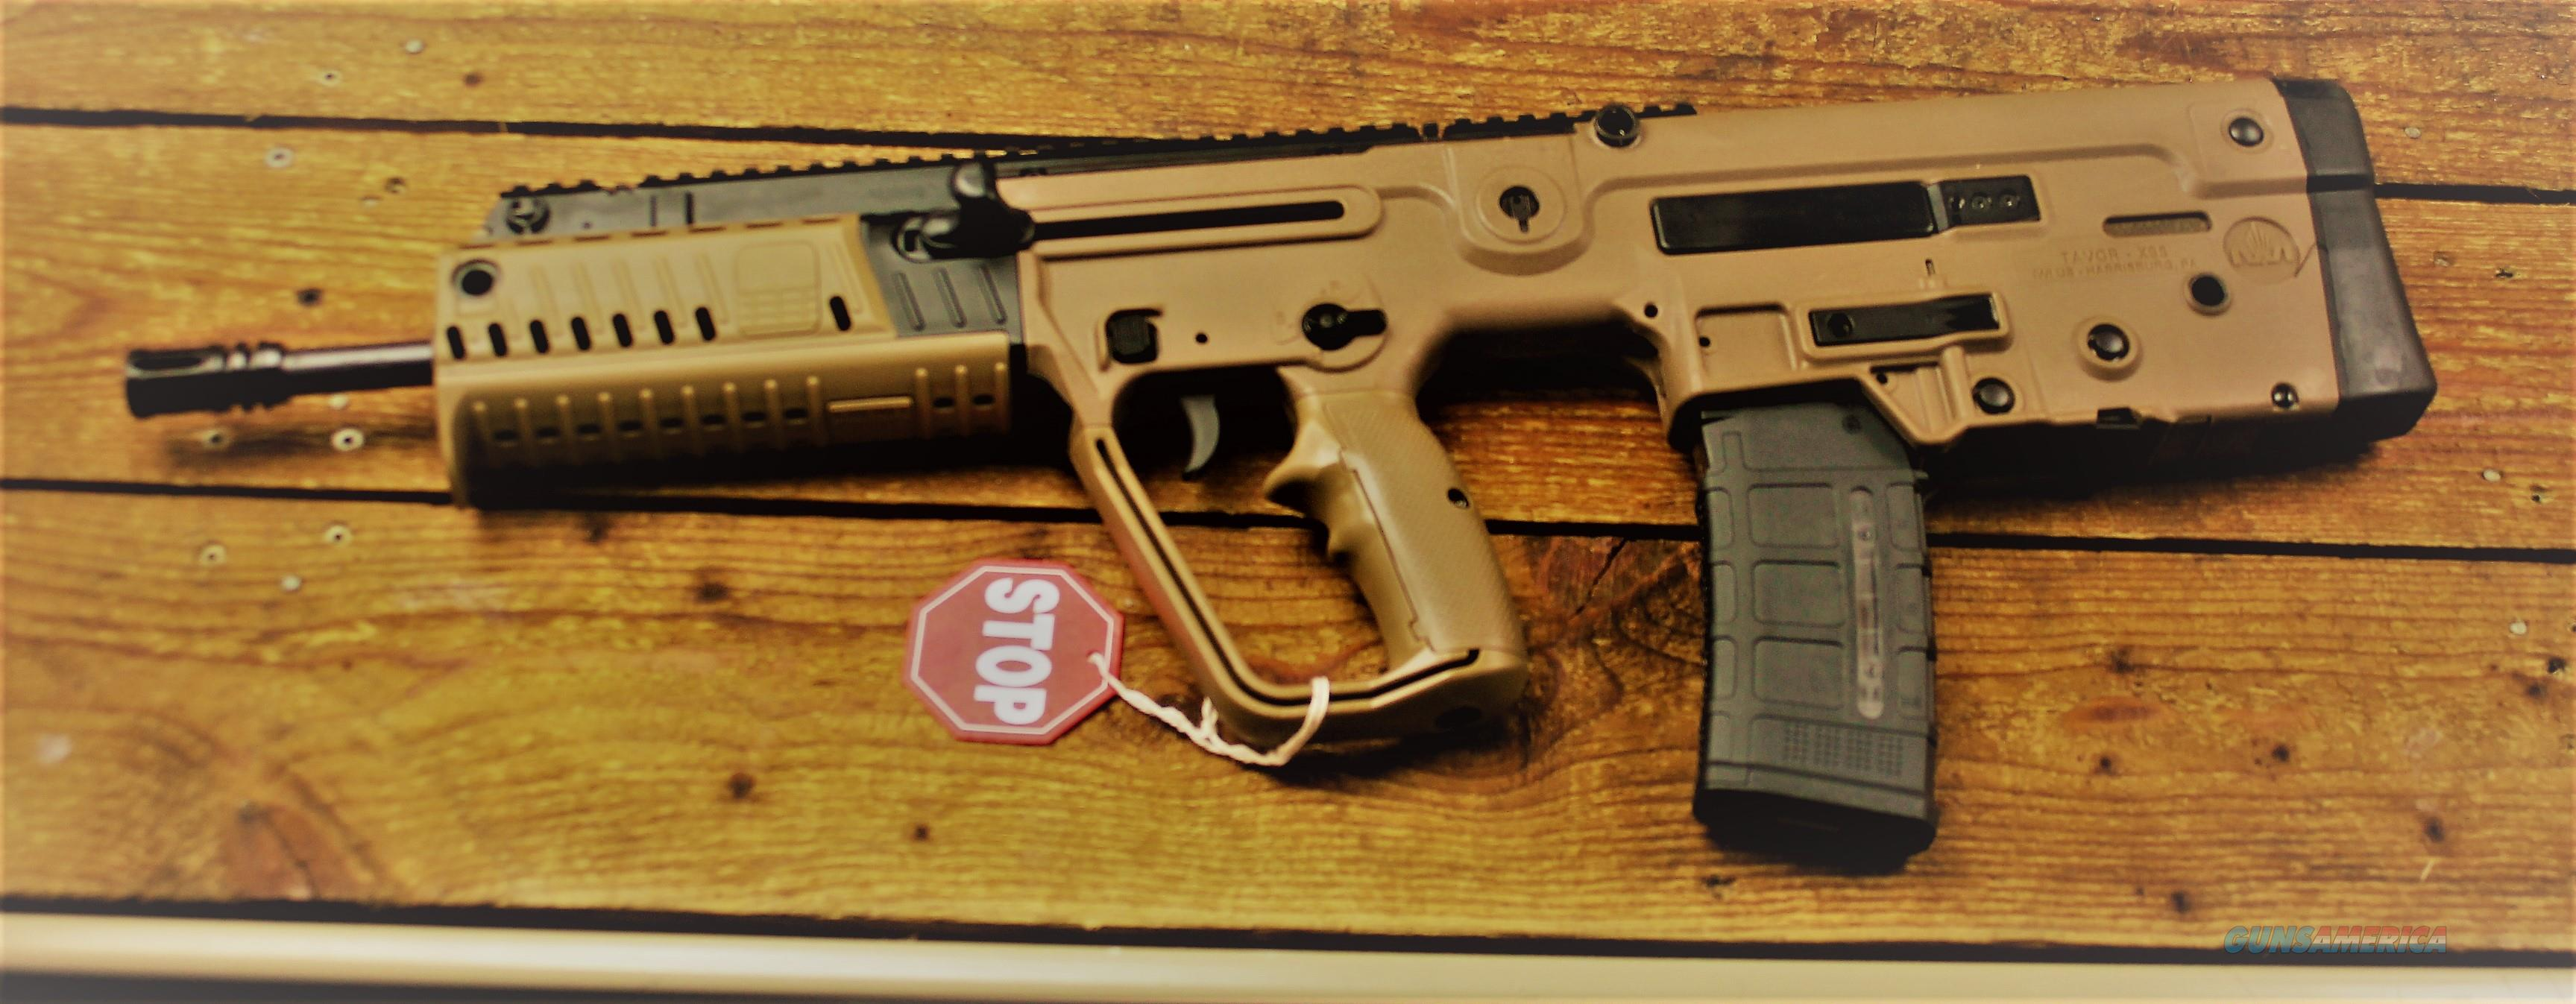 EASY PAY $158 DOWN LAYAWAY 12 MONTHLY PAYMENTS IWI  XFD16 Tavor Close Quarter Design TACTICAL  X95 CENTERFIRE TAC Next Generation bullpup Folding Tritium SIGHTS 223 Remington 5.56 NATO Polymer FDE POLY Flat Dark Earth STOCK Synthetic   Guns > Rifles > IWI Rifles